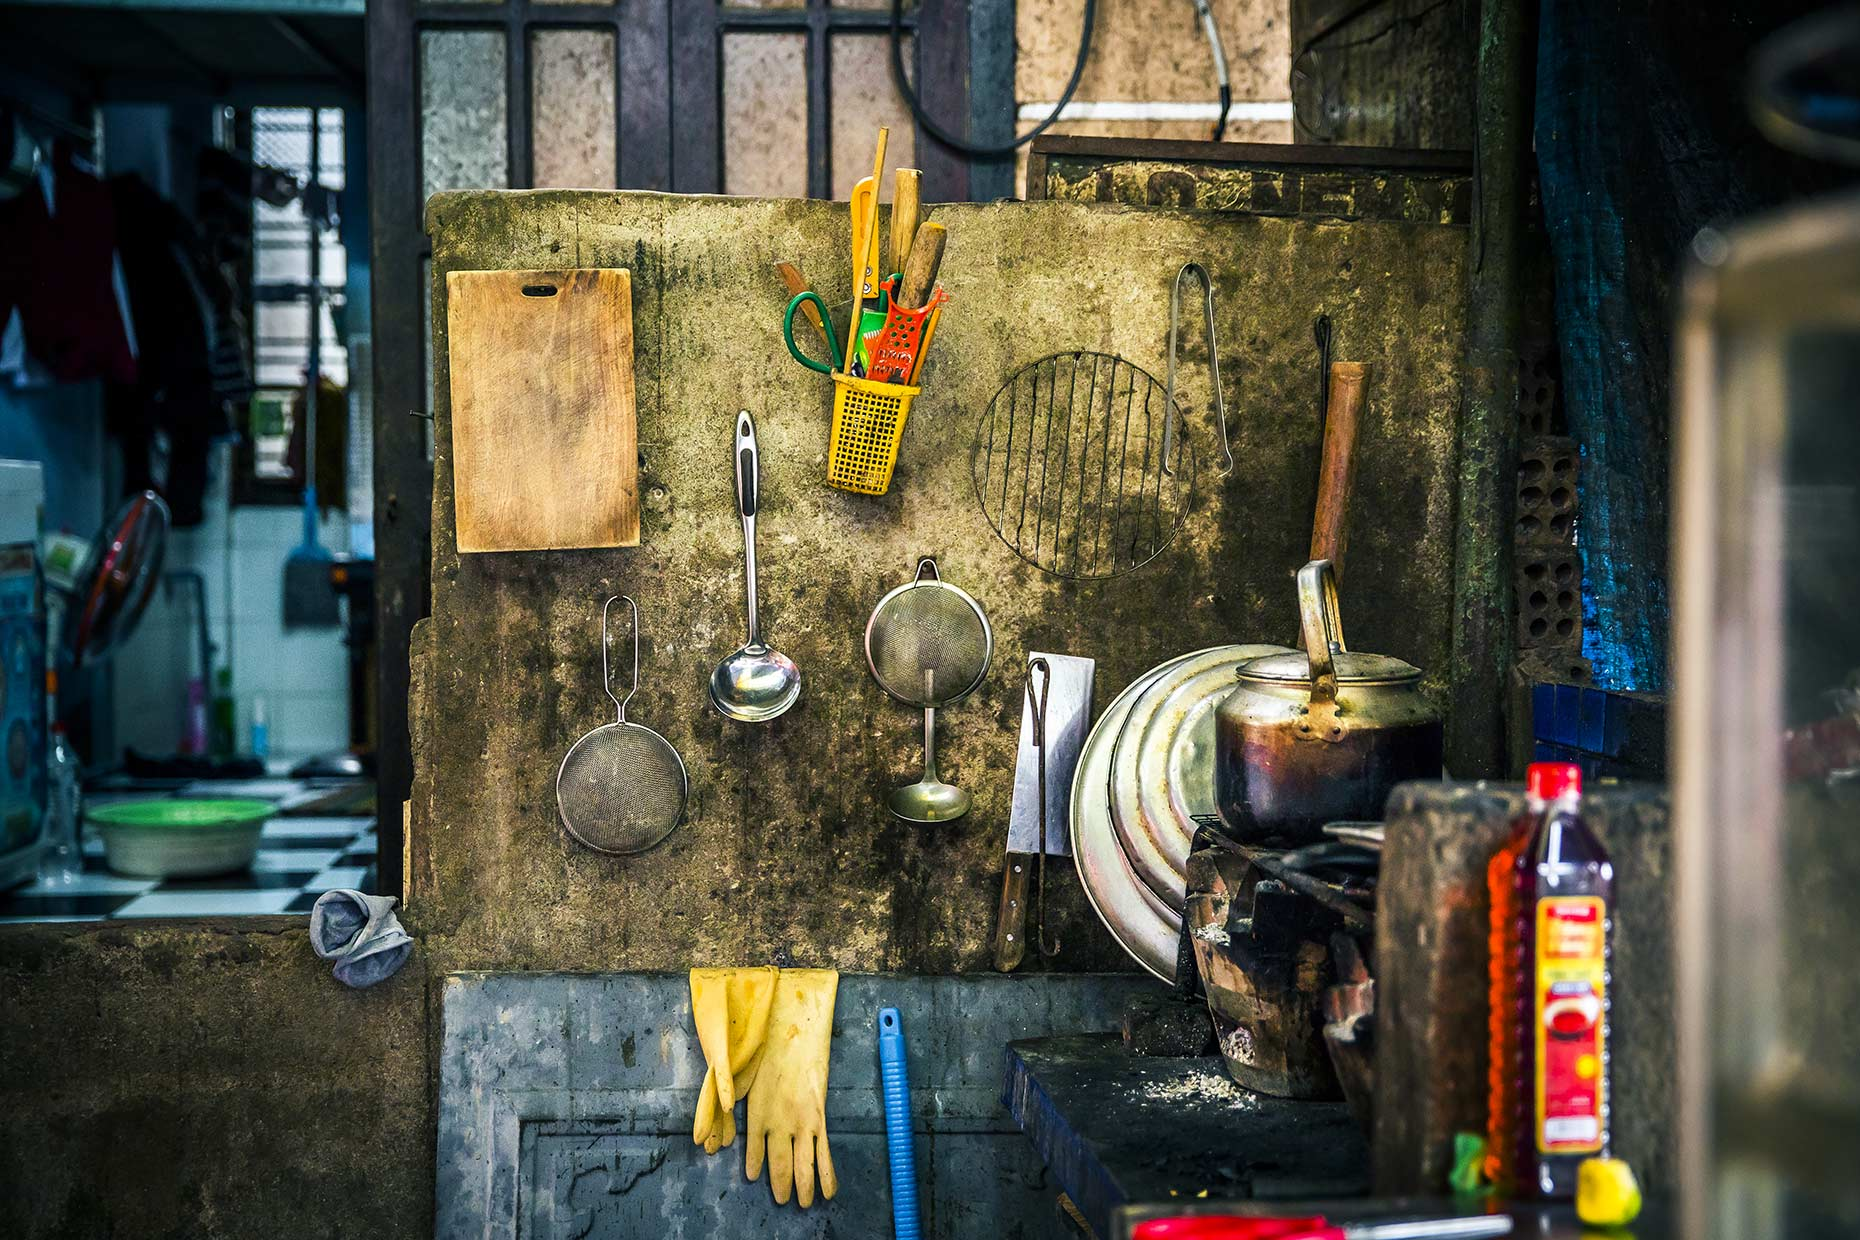 Kitchen Clutter - Vietnam